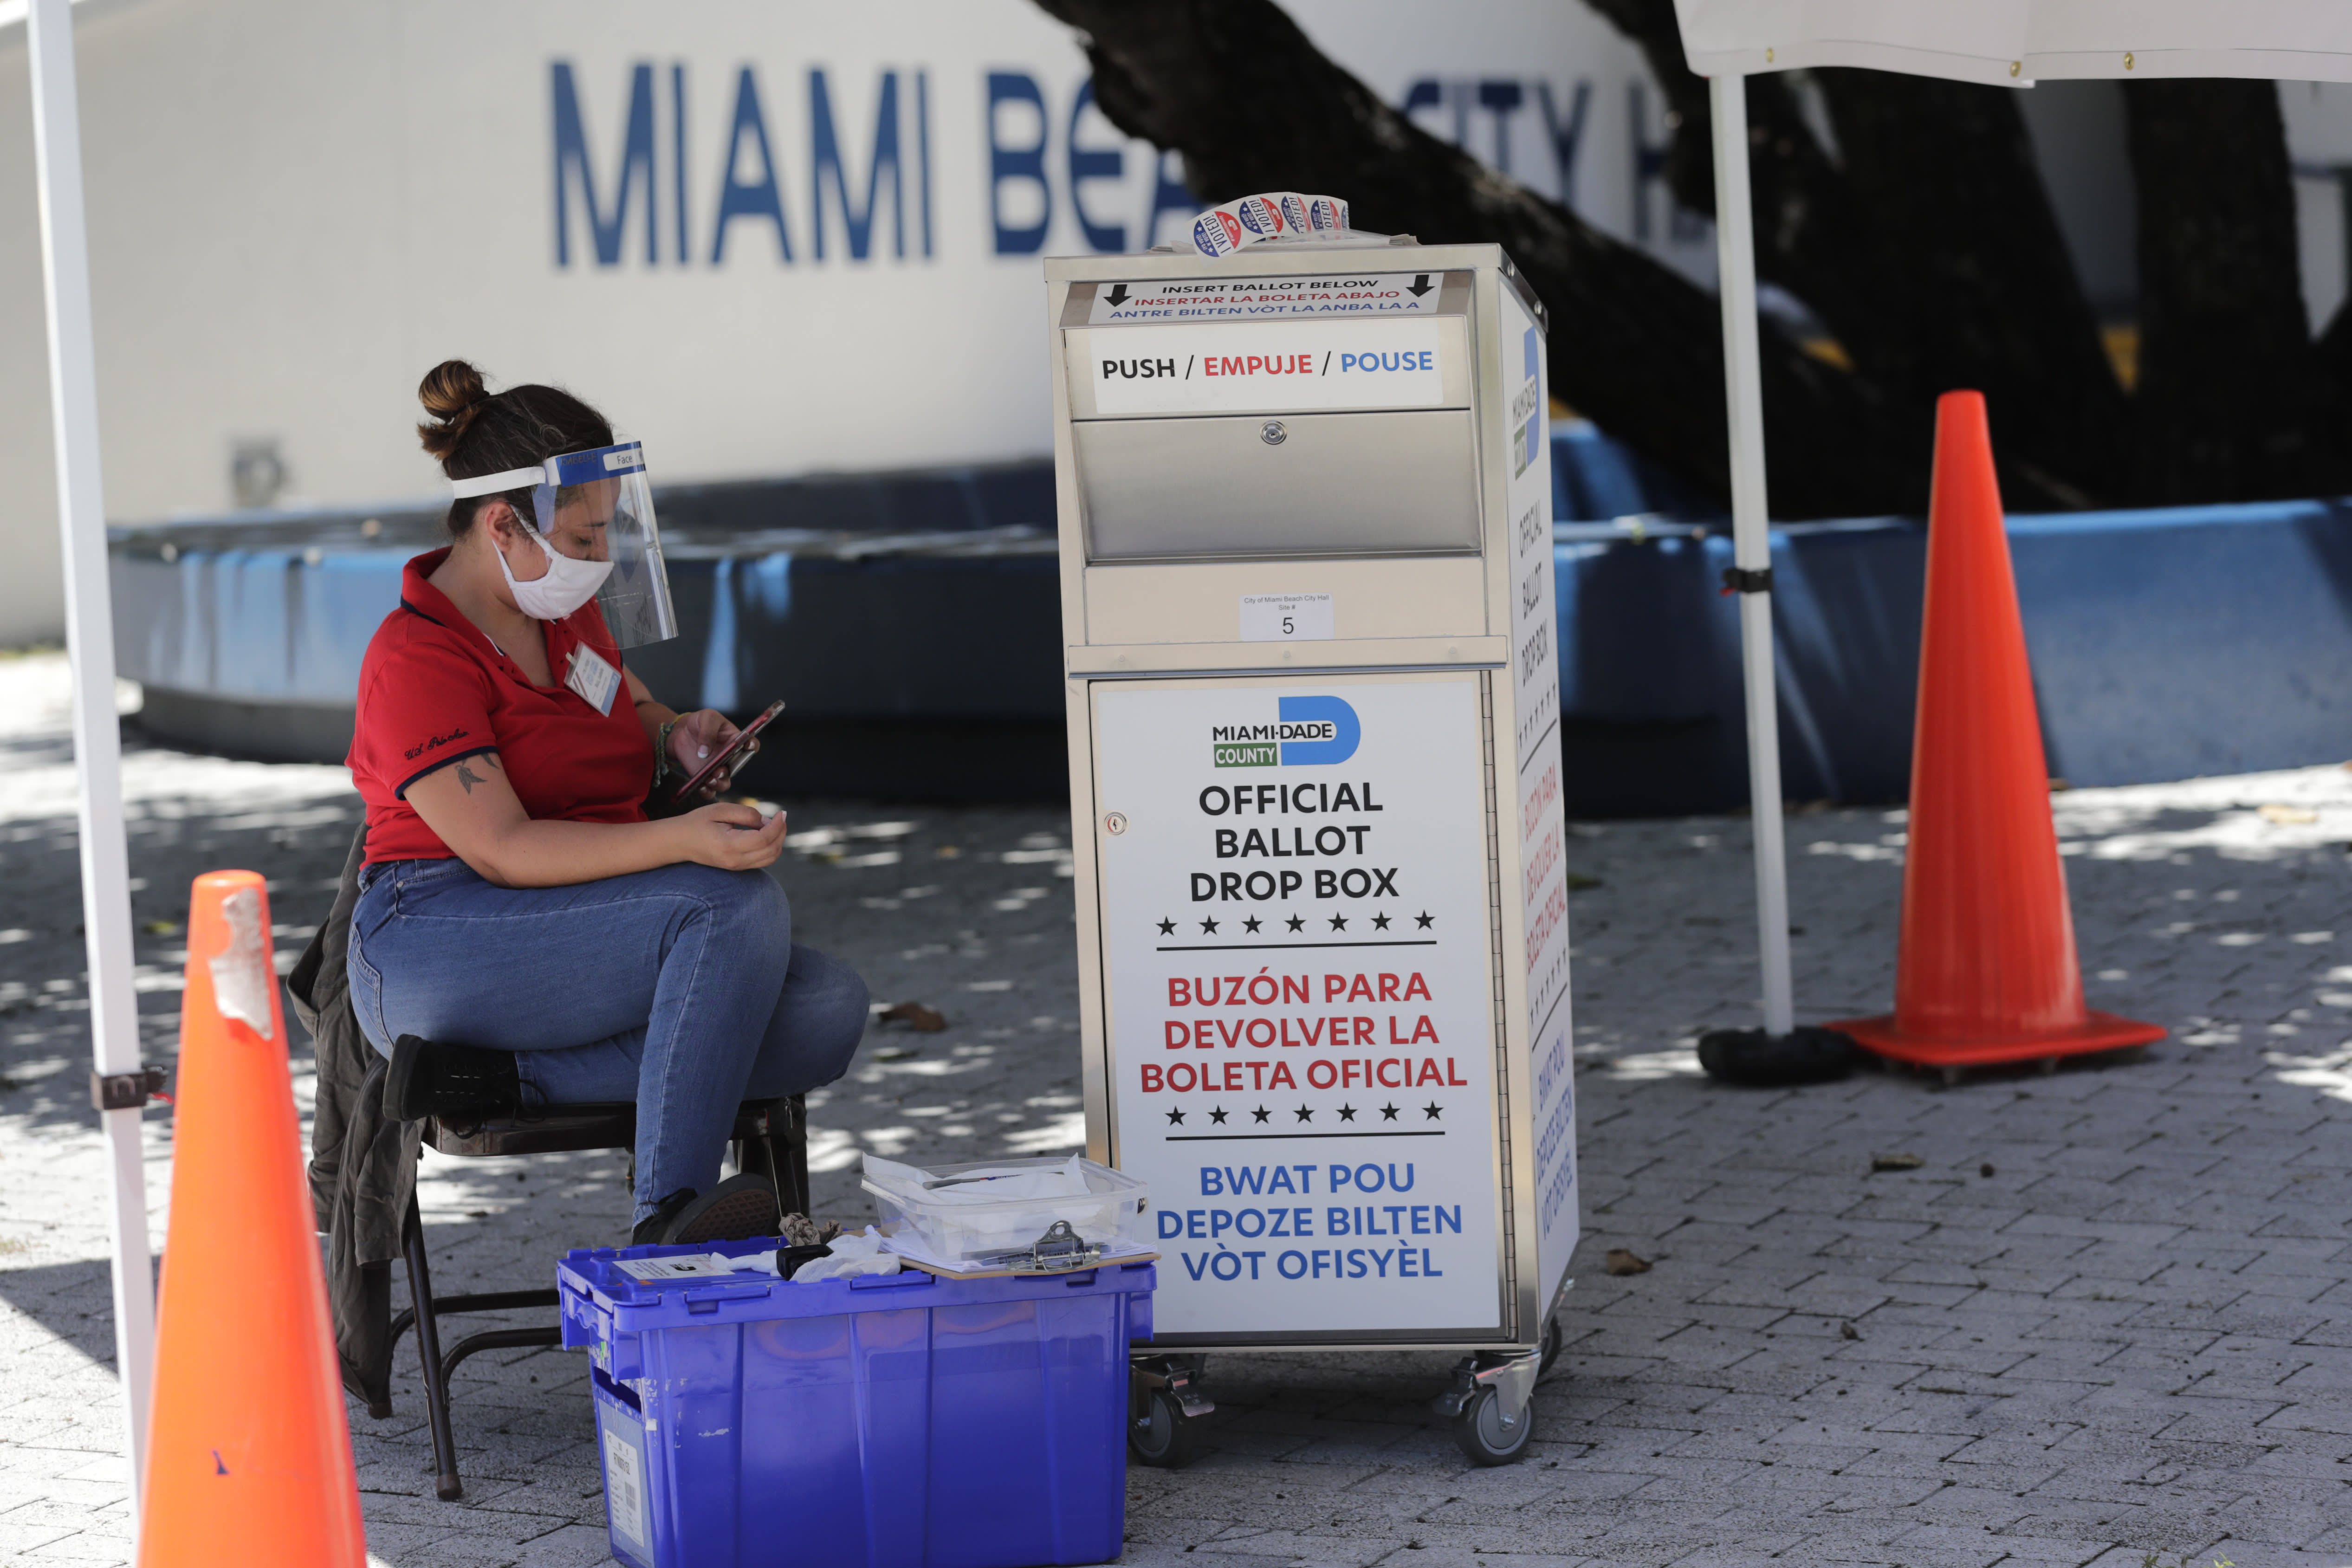 FILE - In this Aug. 7, 2020, file photo, a poll worker wears personal protective equipment as she monitors a ballot drop box for mail-in ballots outside of a polling station during early voting in Miami Beach, Fla. With the Trump administration openly trying to undermine mail-in voting this fall, some election officials around the country are hoping to bypass the Postal Service by installing lots of ballot drop boxes in libraries, community centers and other public places. (AP Photo/Lynne Sladky, File)